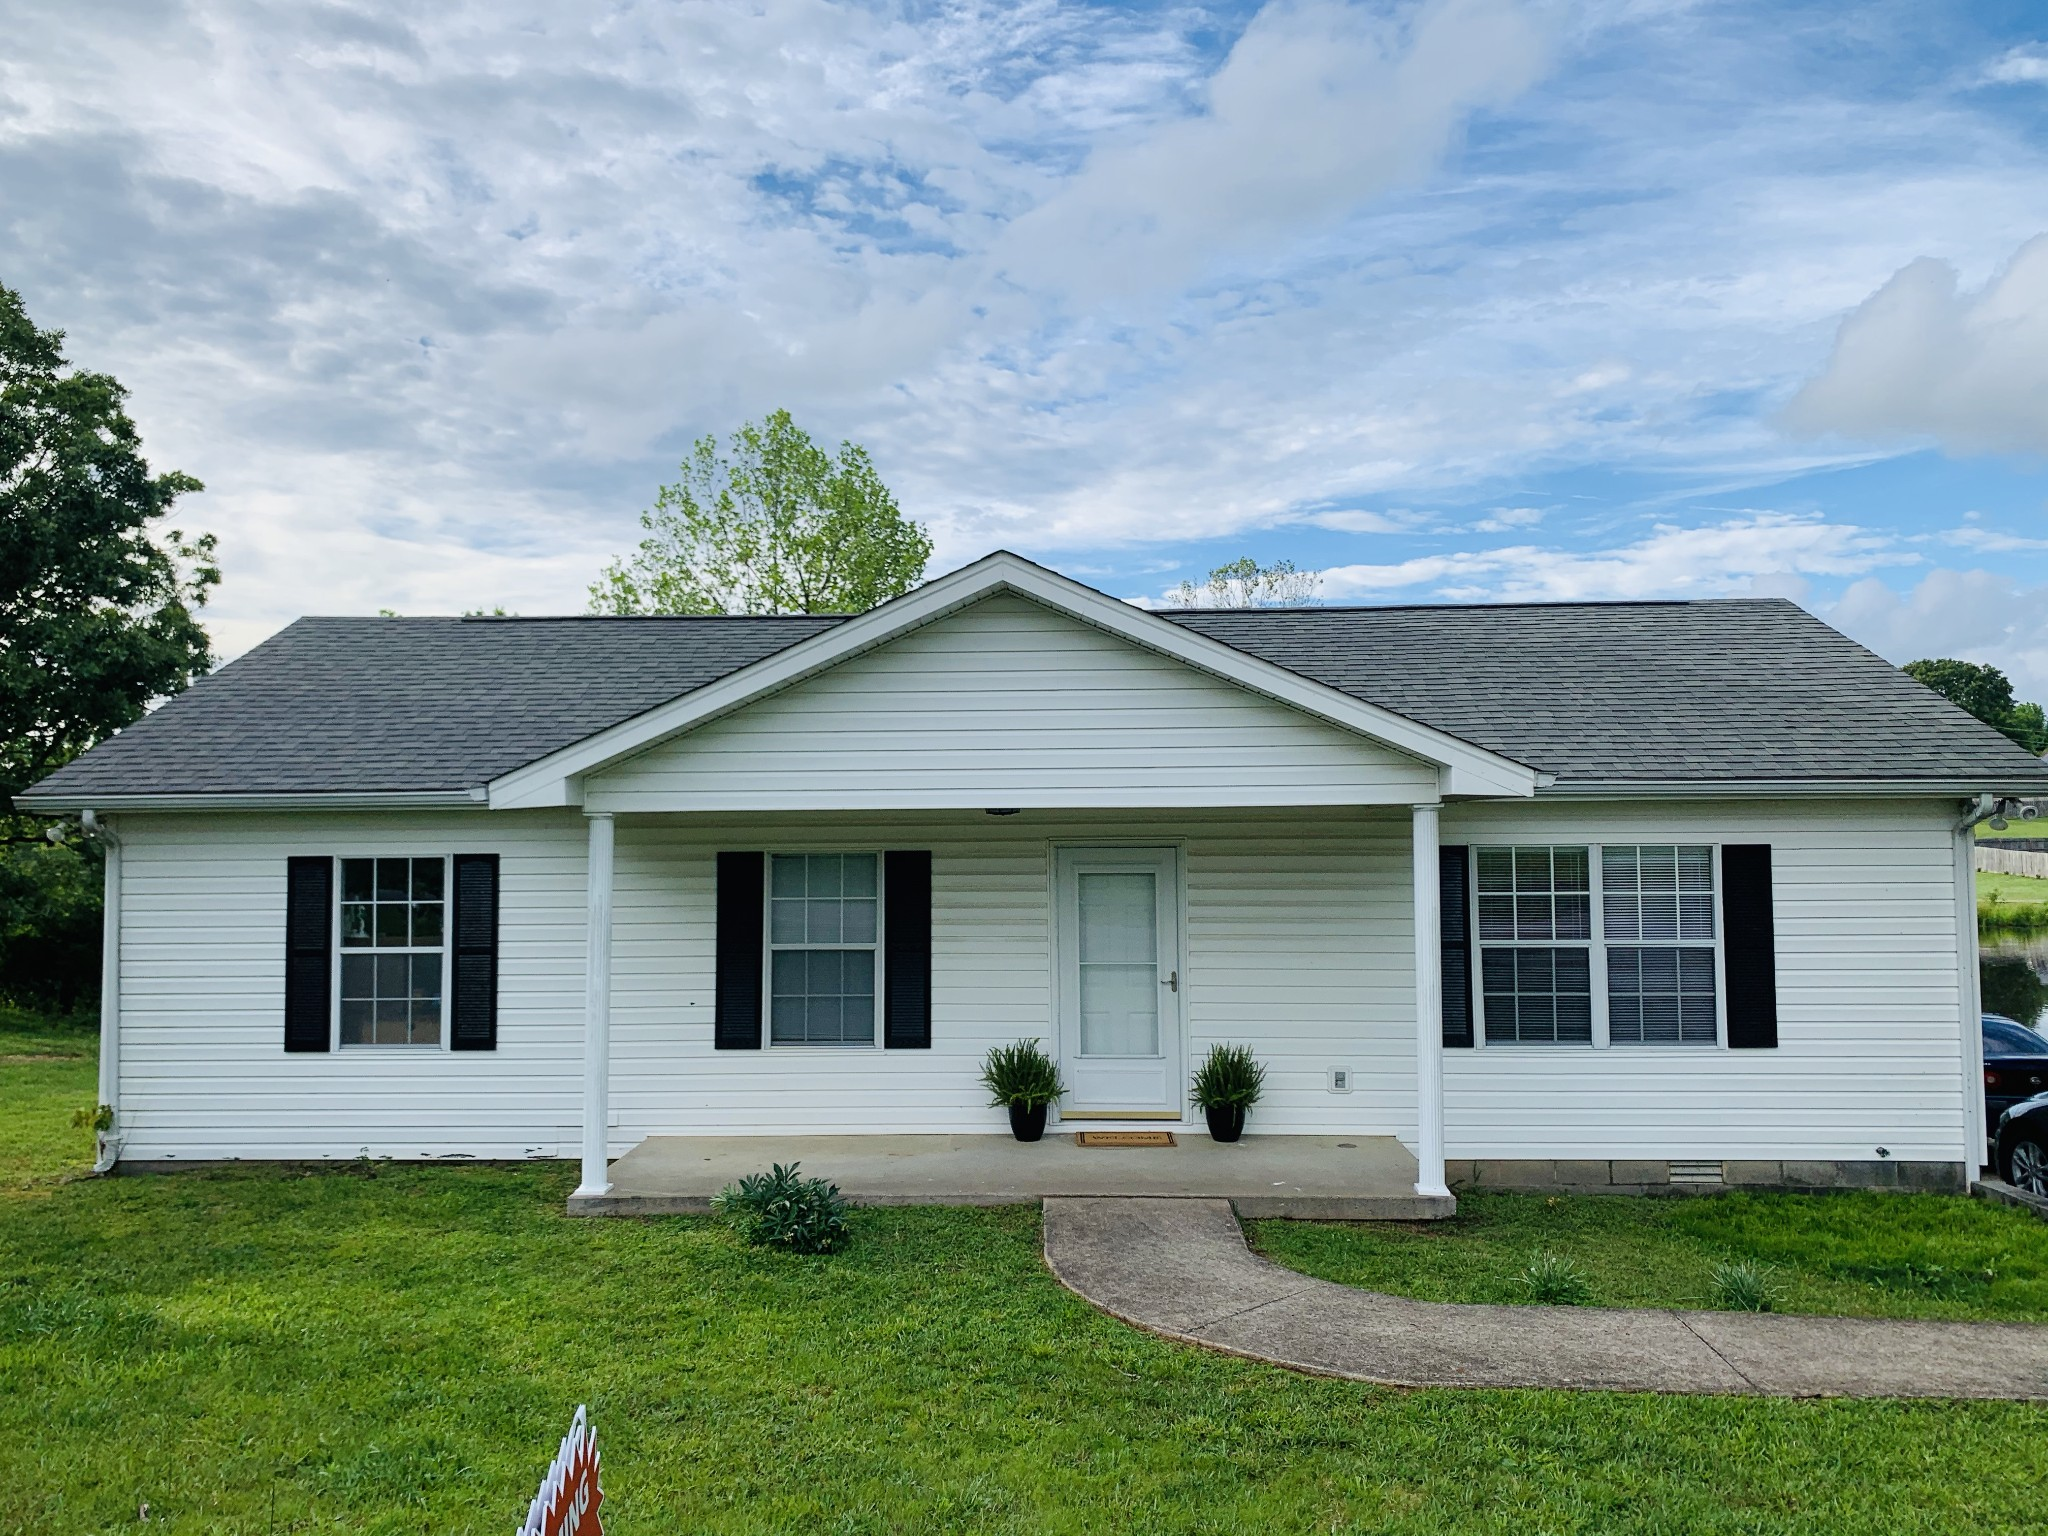 51 Rye St, MC EWEN, TN 37101 - MC EWEN, TN real estate listing